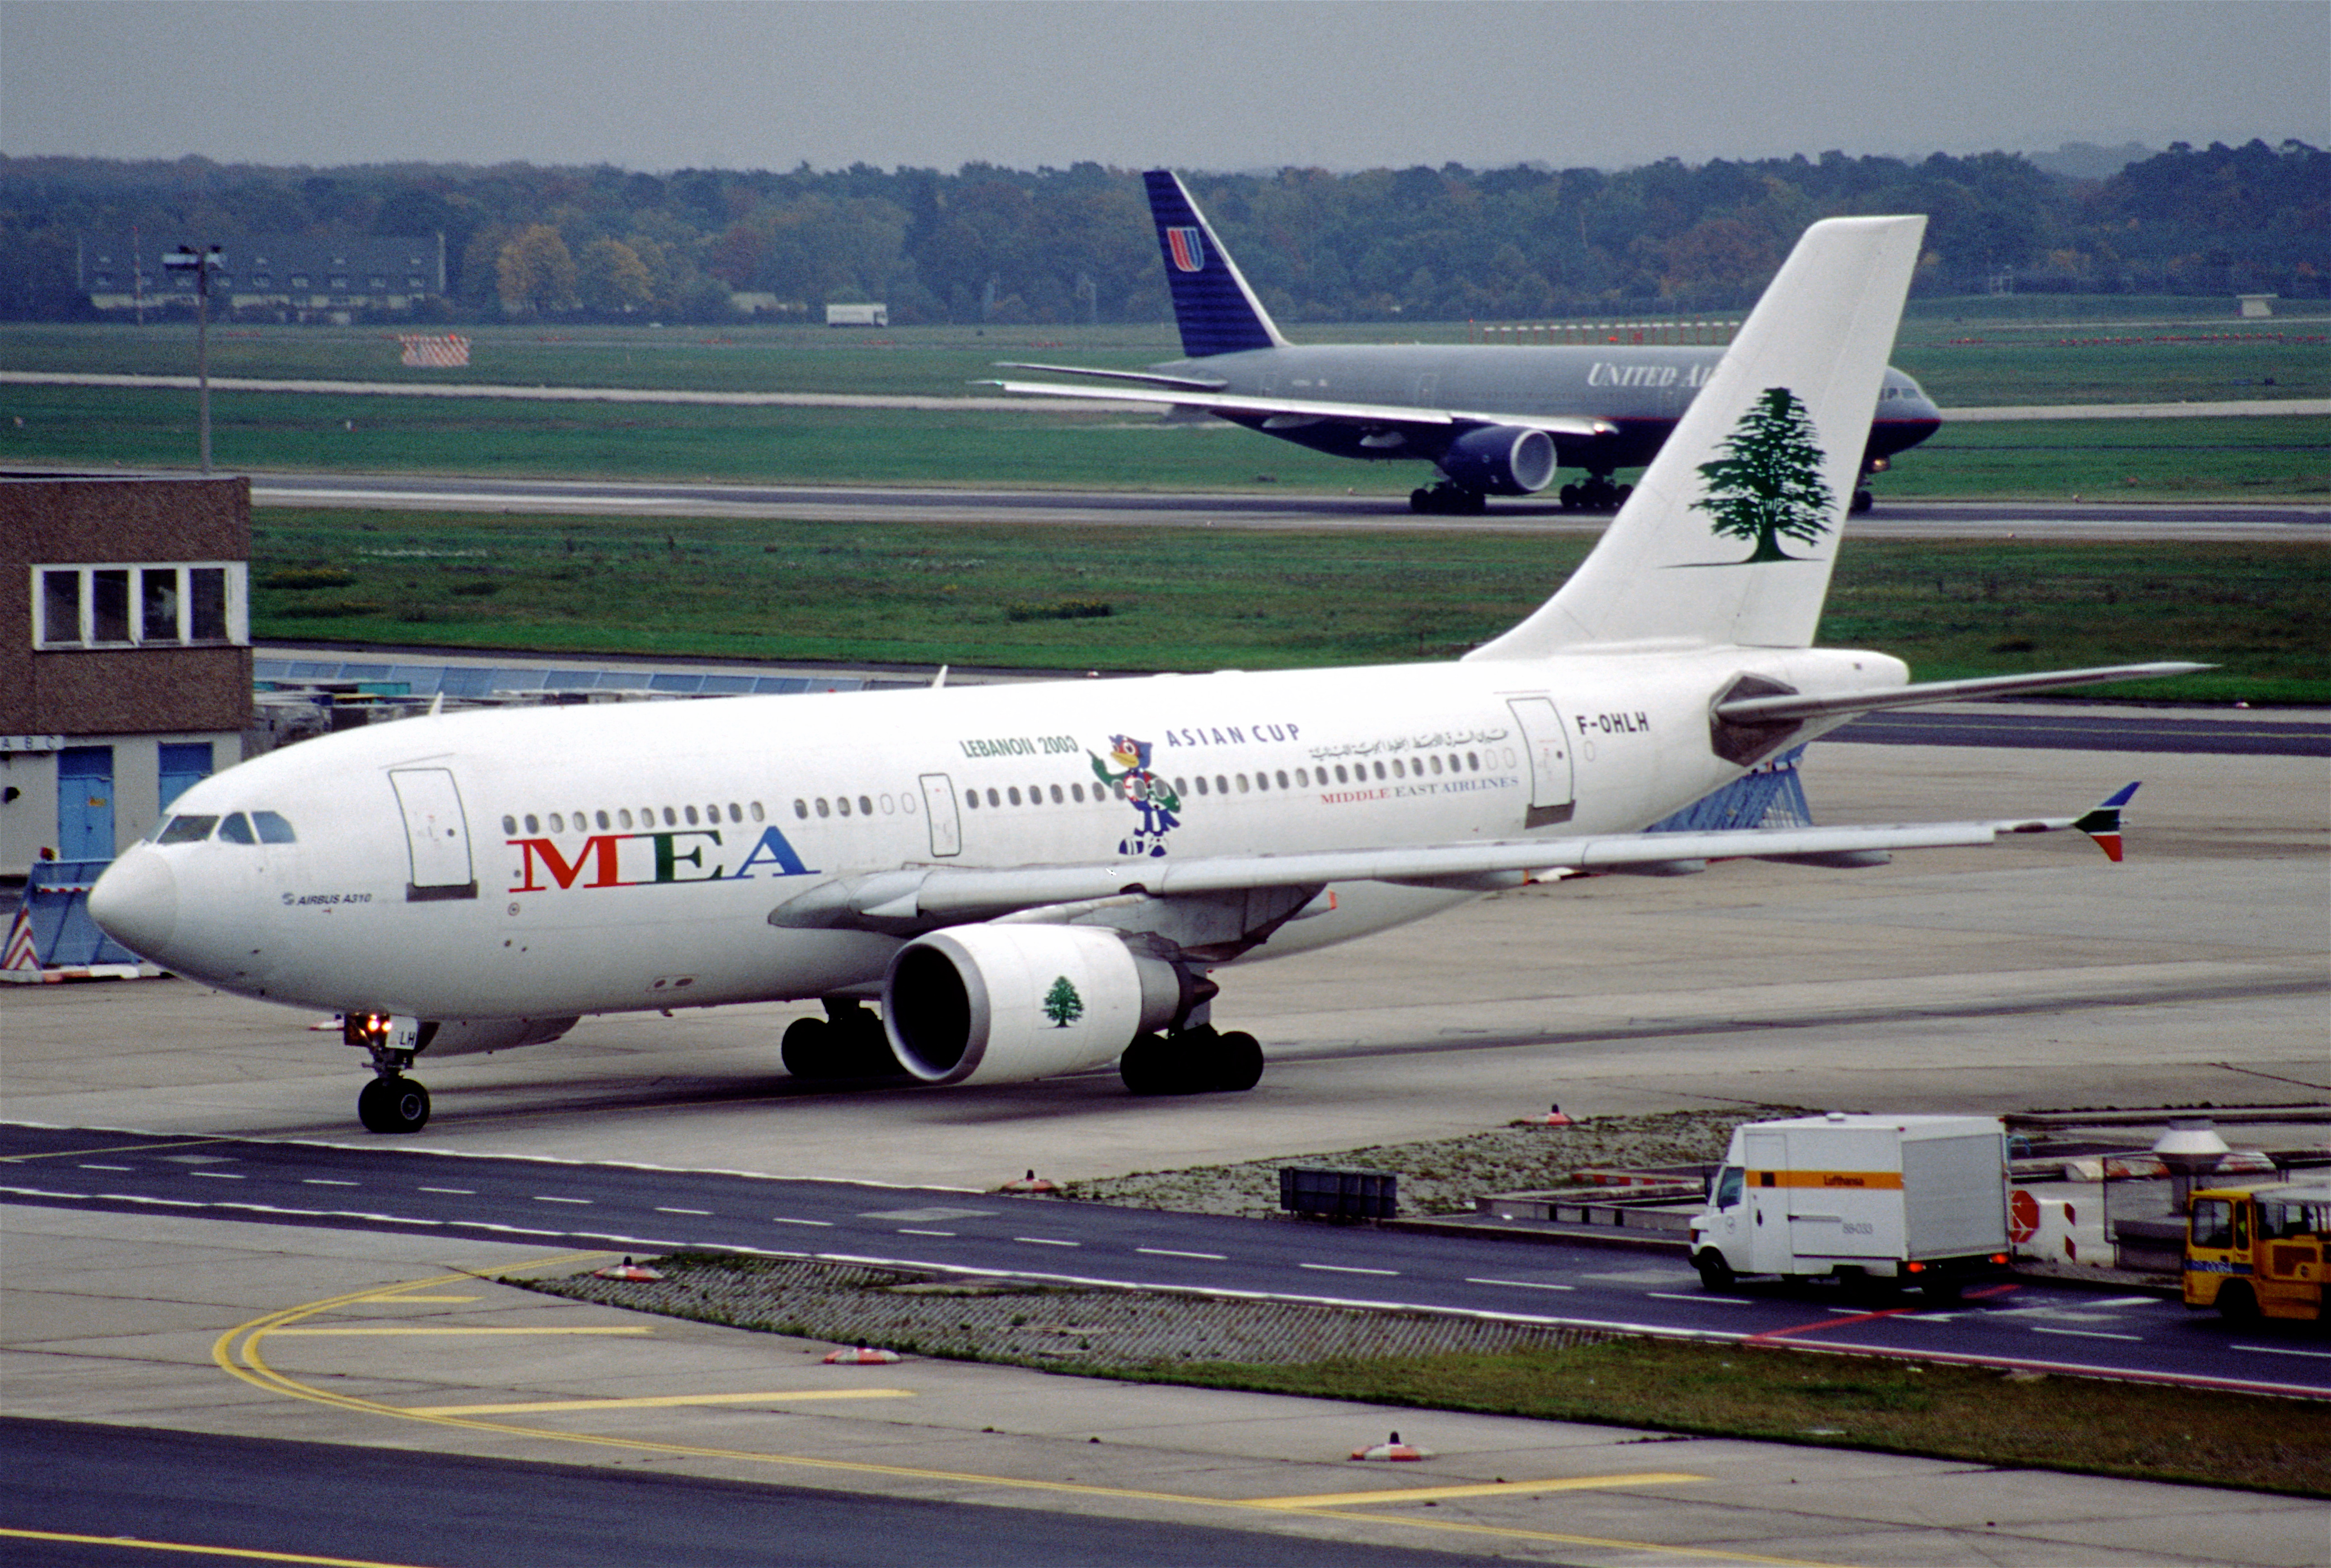 File:113av - MEA - Middle East Airlines Airbus A310-304, F-